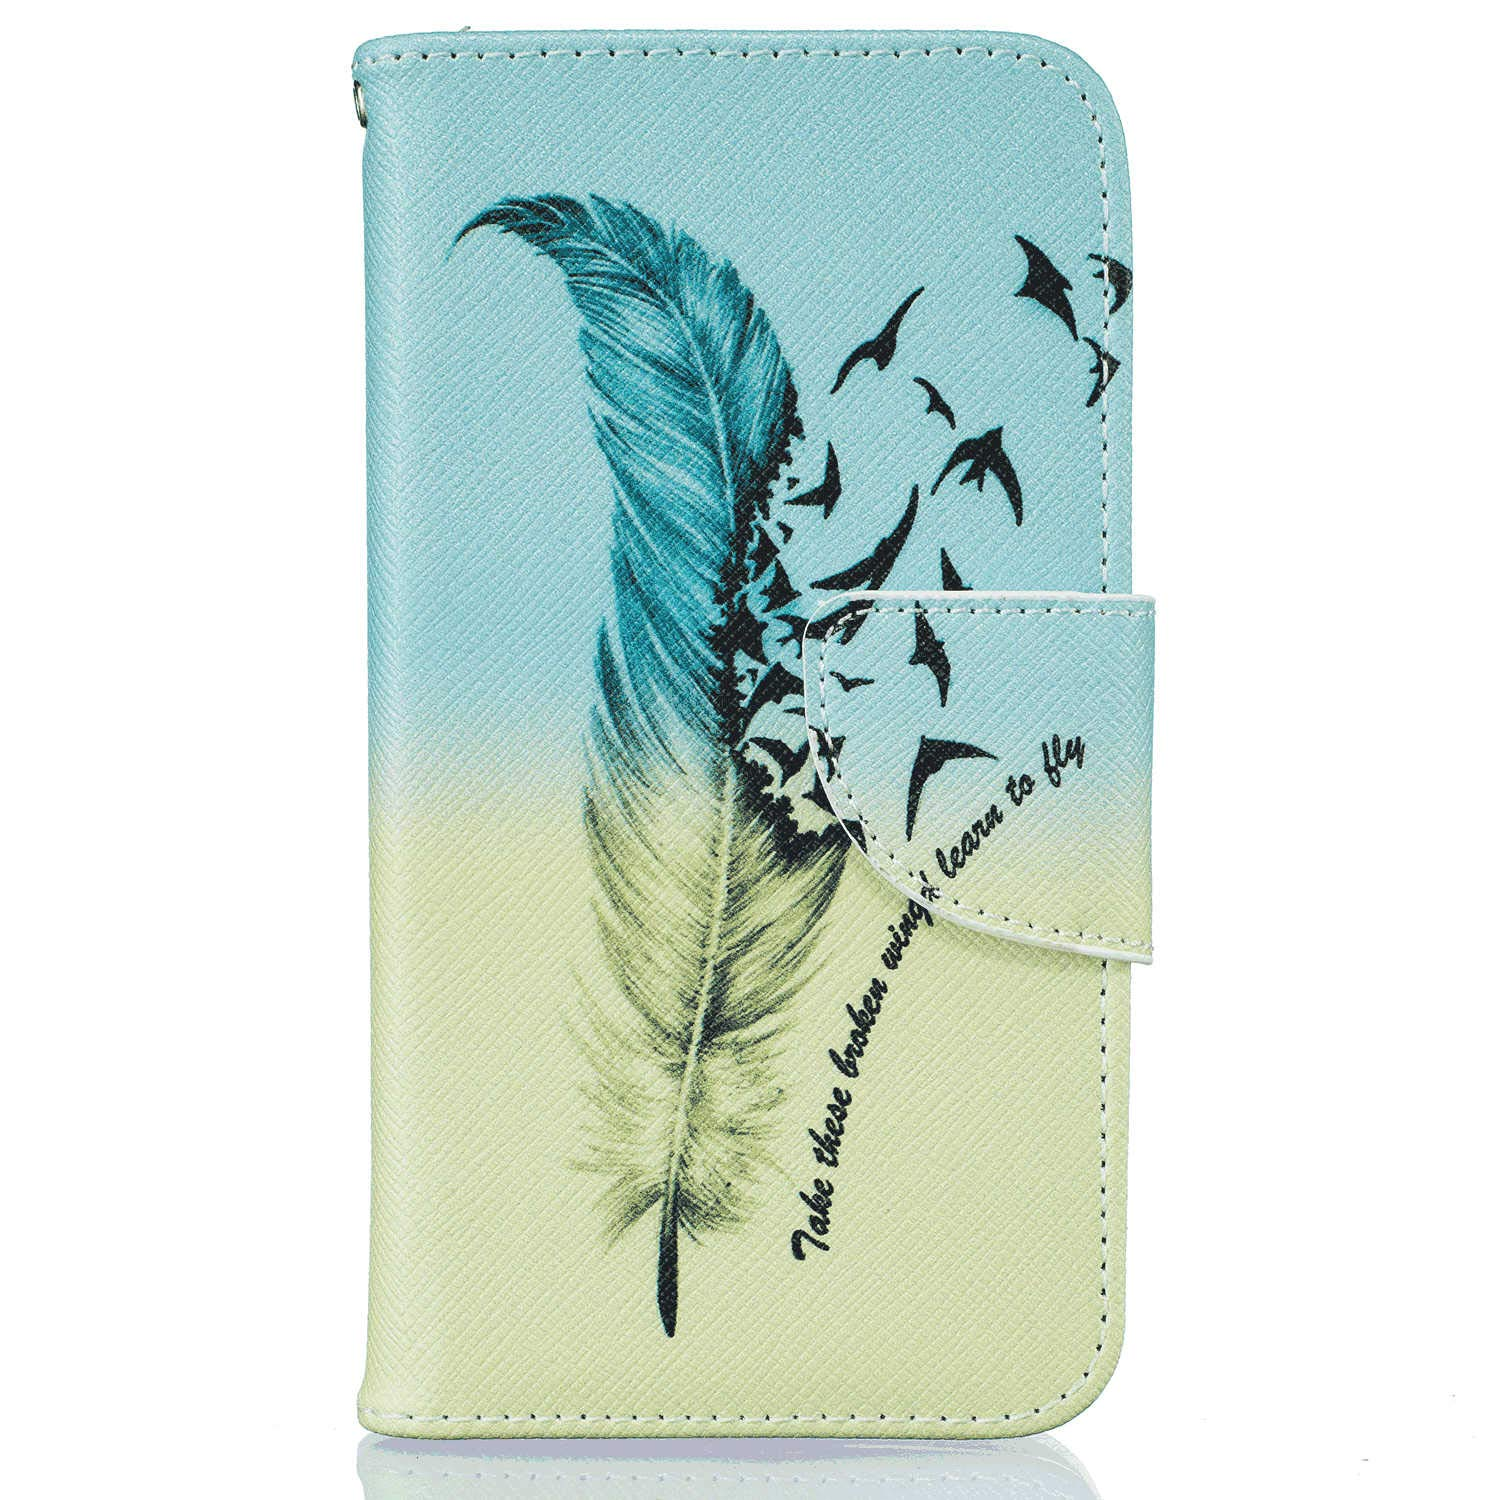 iPhone XR Flip Case, Cover for iPhone XR Leather Cell Phone case Card Holders Luxury Business Kickstand with Free Waterproof-Bag Business